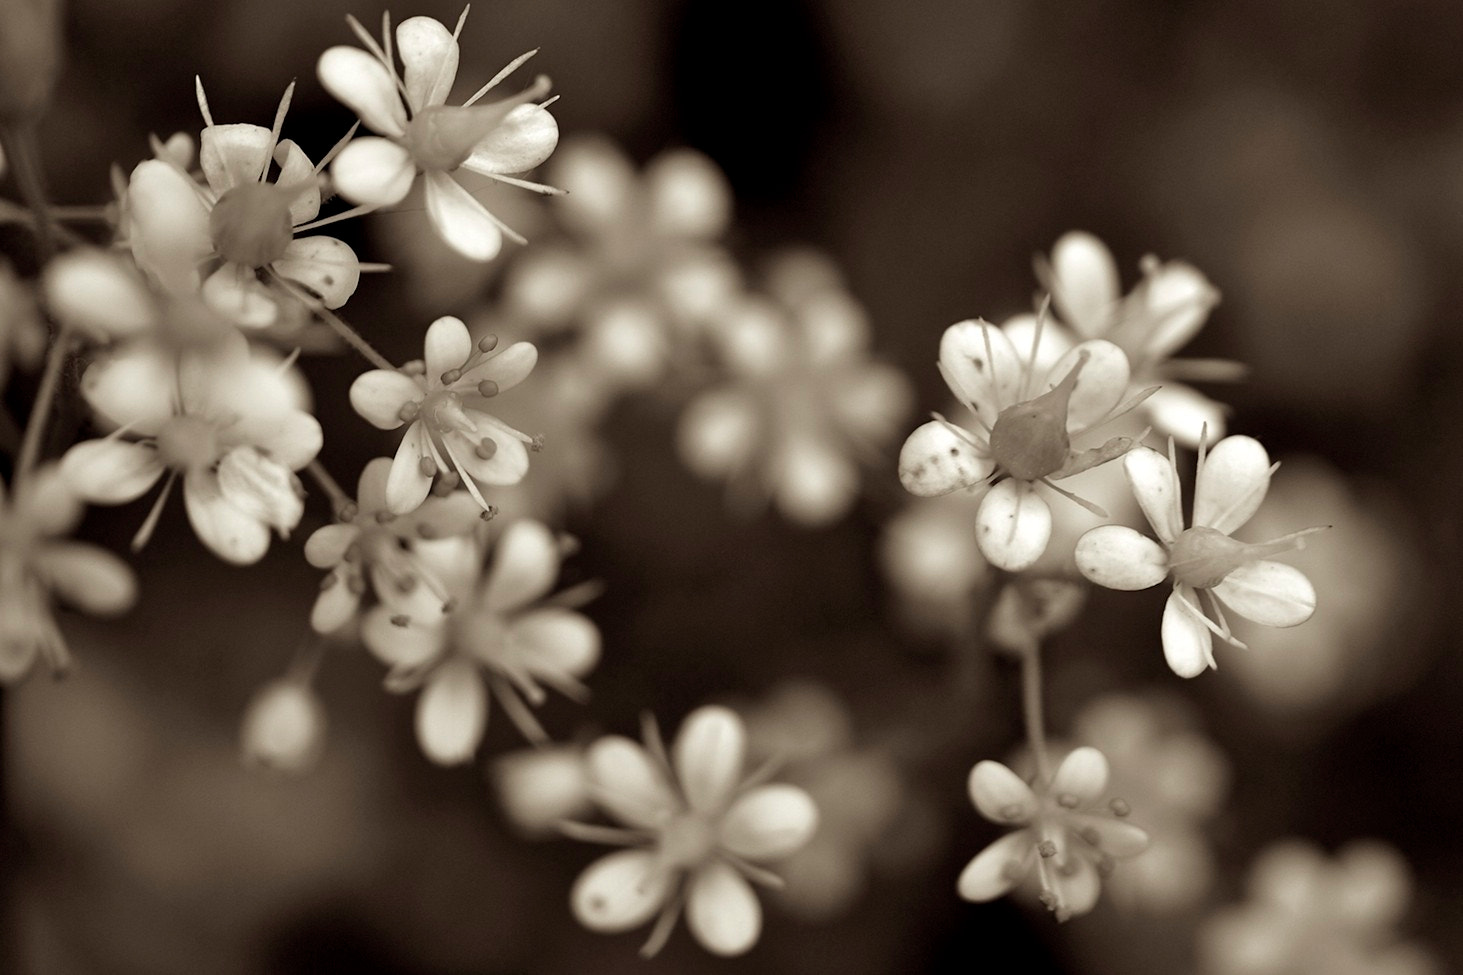 Photograph Pixie Stars by John Flick Purchase on 500px